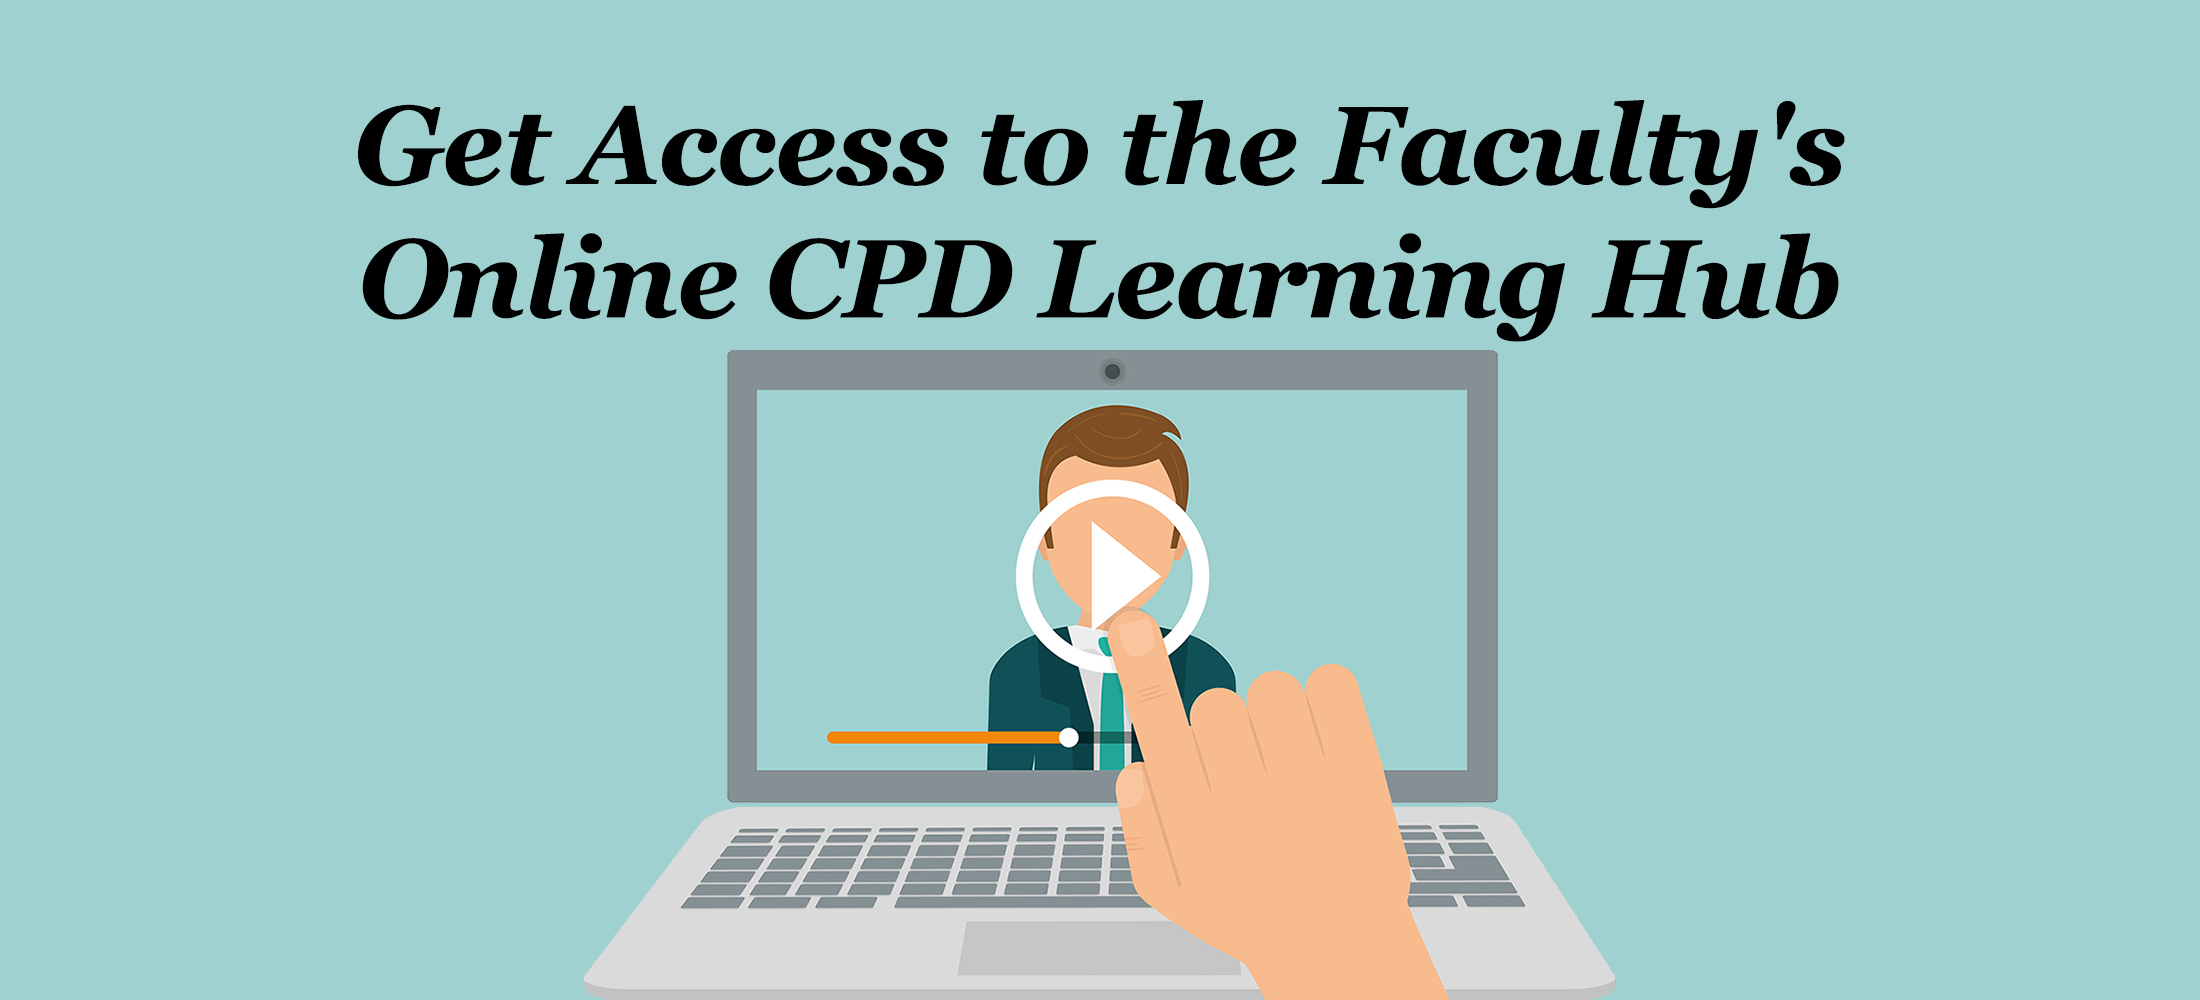 Online CPD Learning Hub